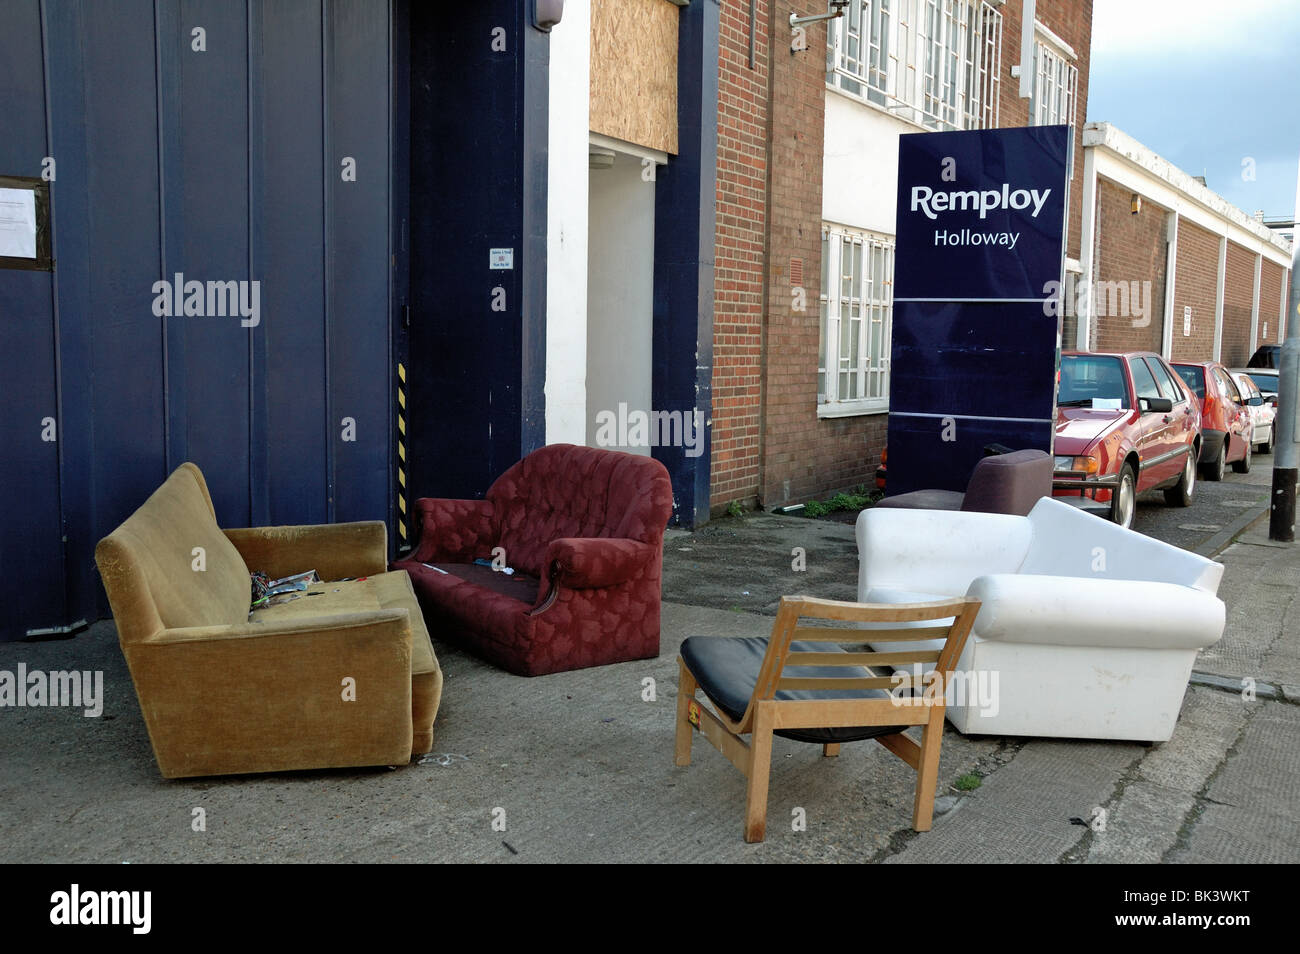 Furniture in street after squatters eviction from the closed Remploy building Holloway London England UK & Furniture in street after squatters eviction from the closed Remploy ...